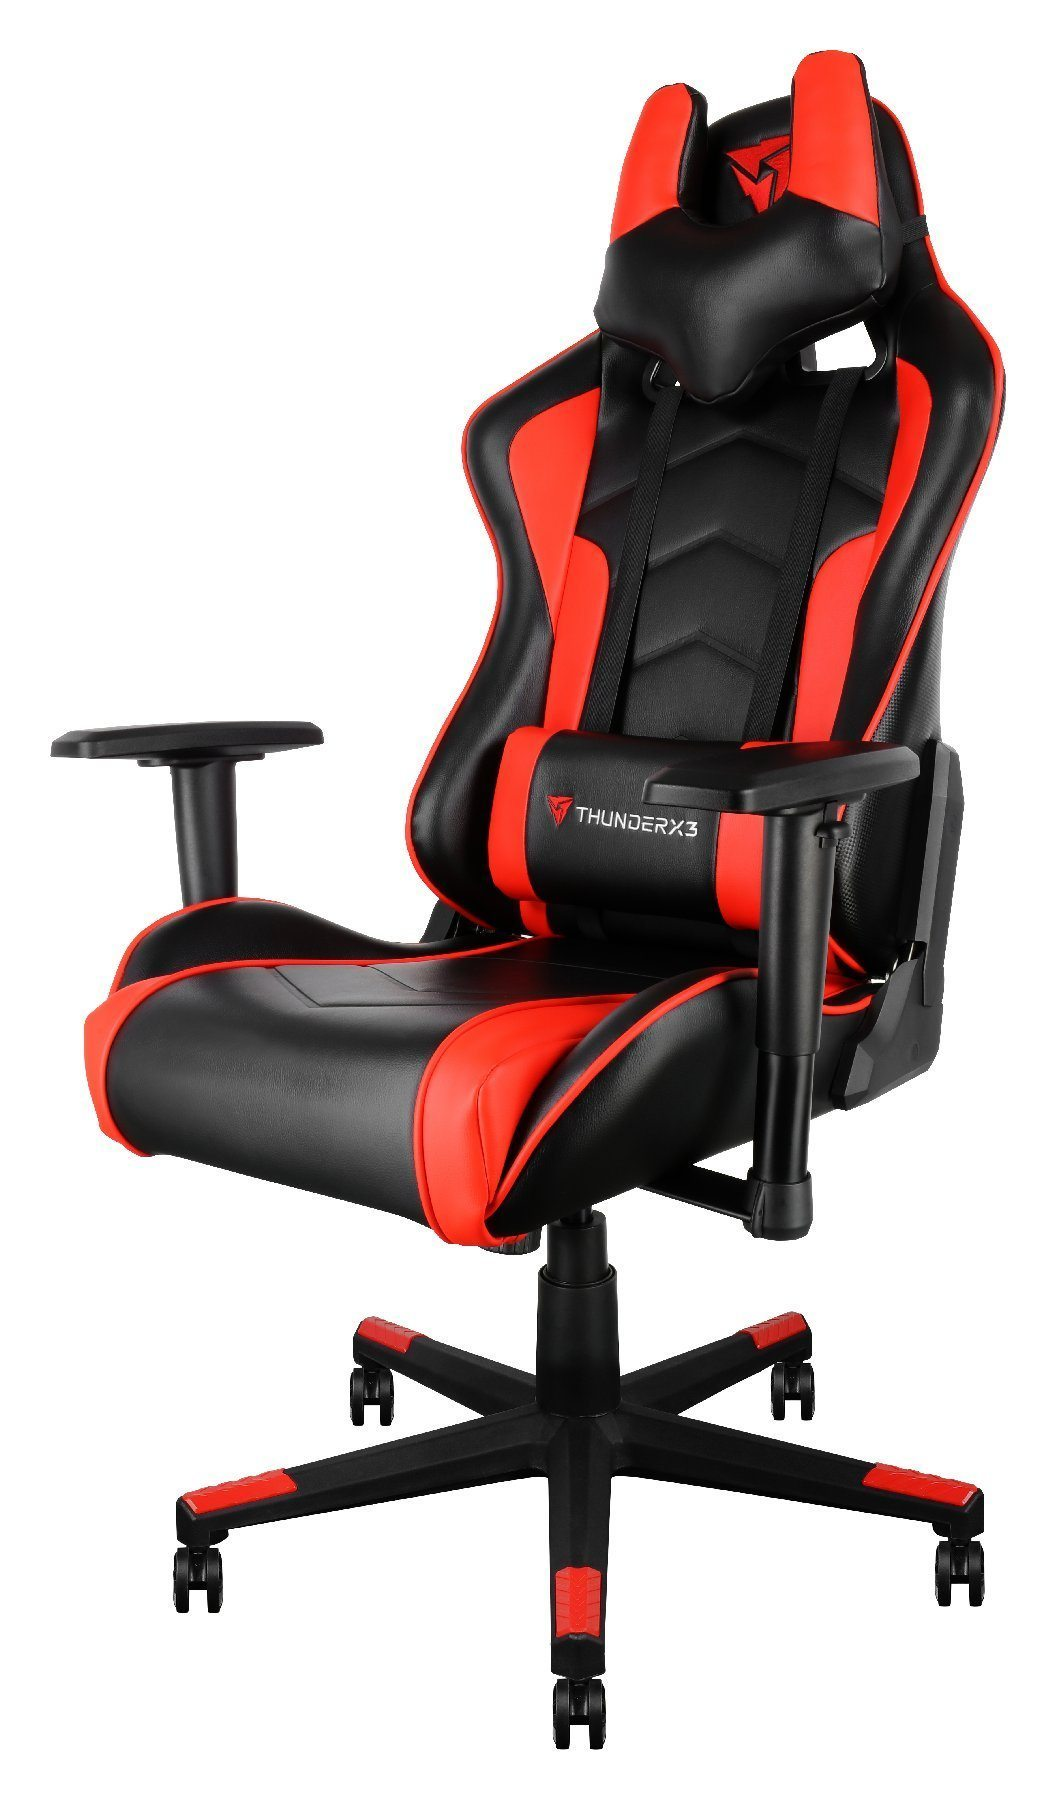 геймърски стол THUNDERX3 Gaming Chair TGC22-Black-Red